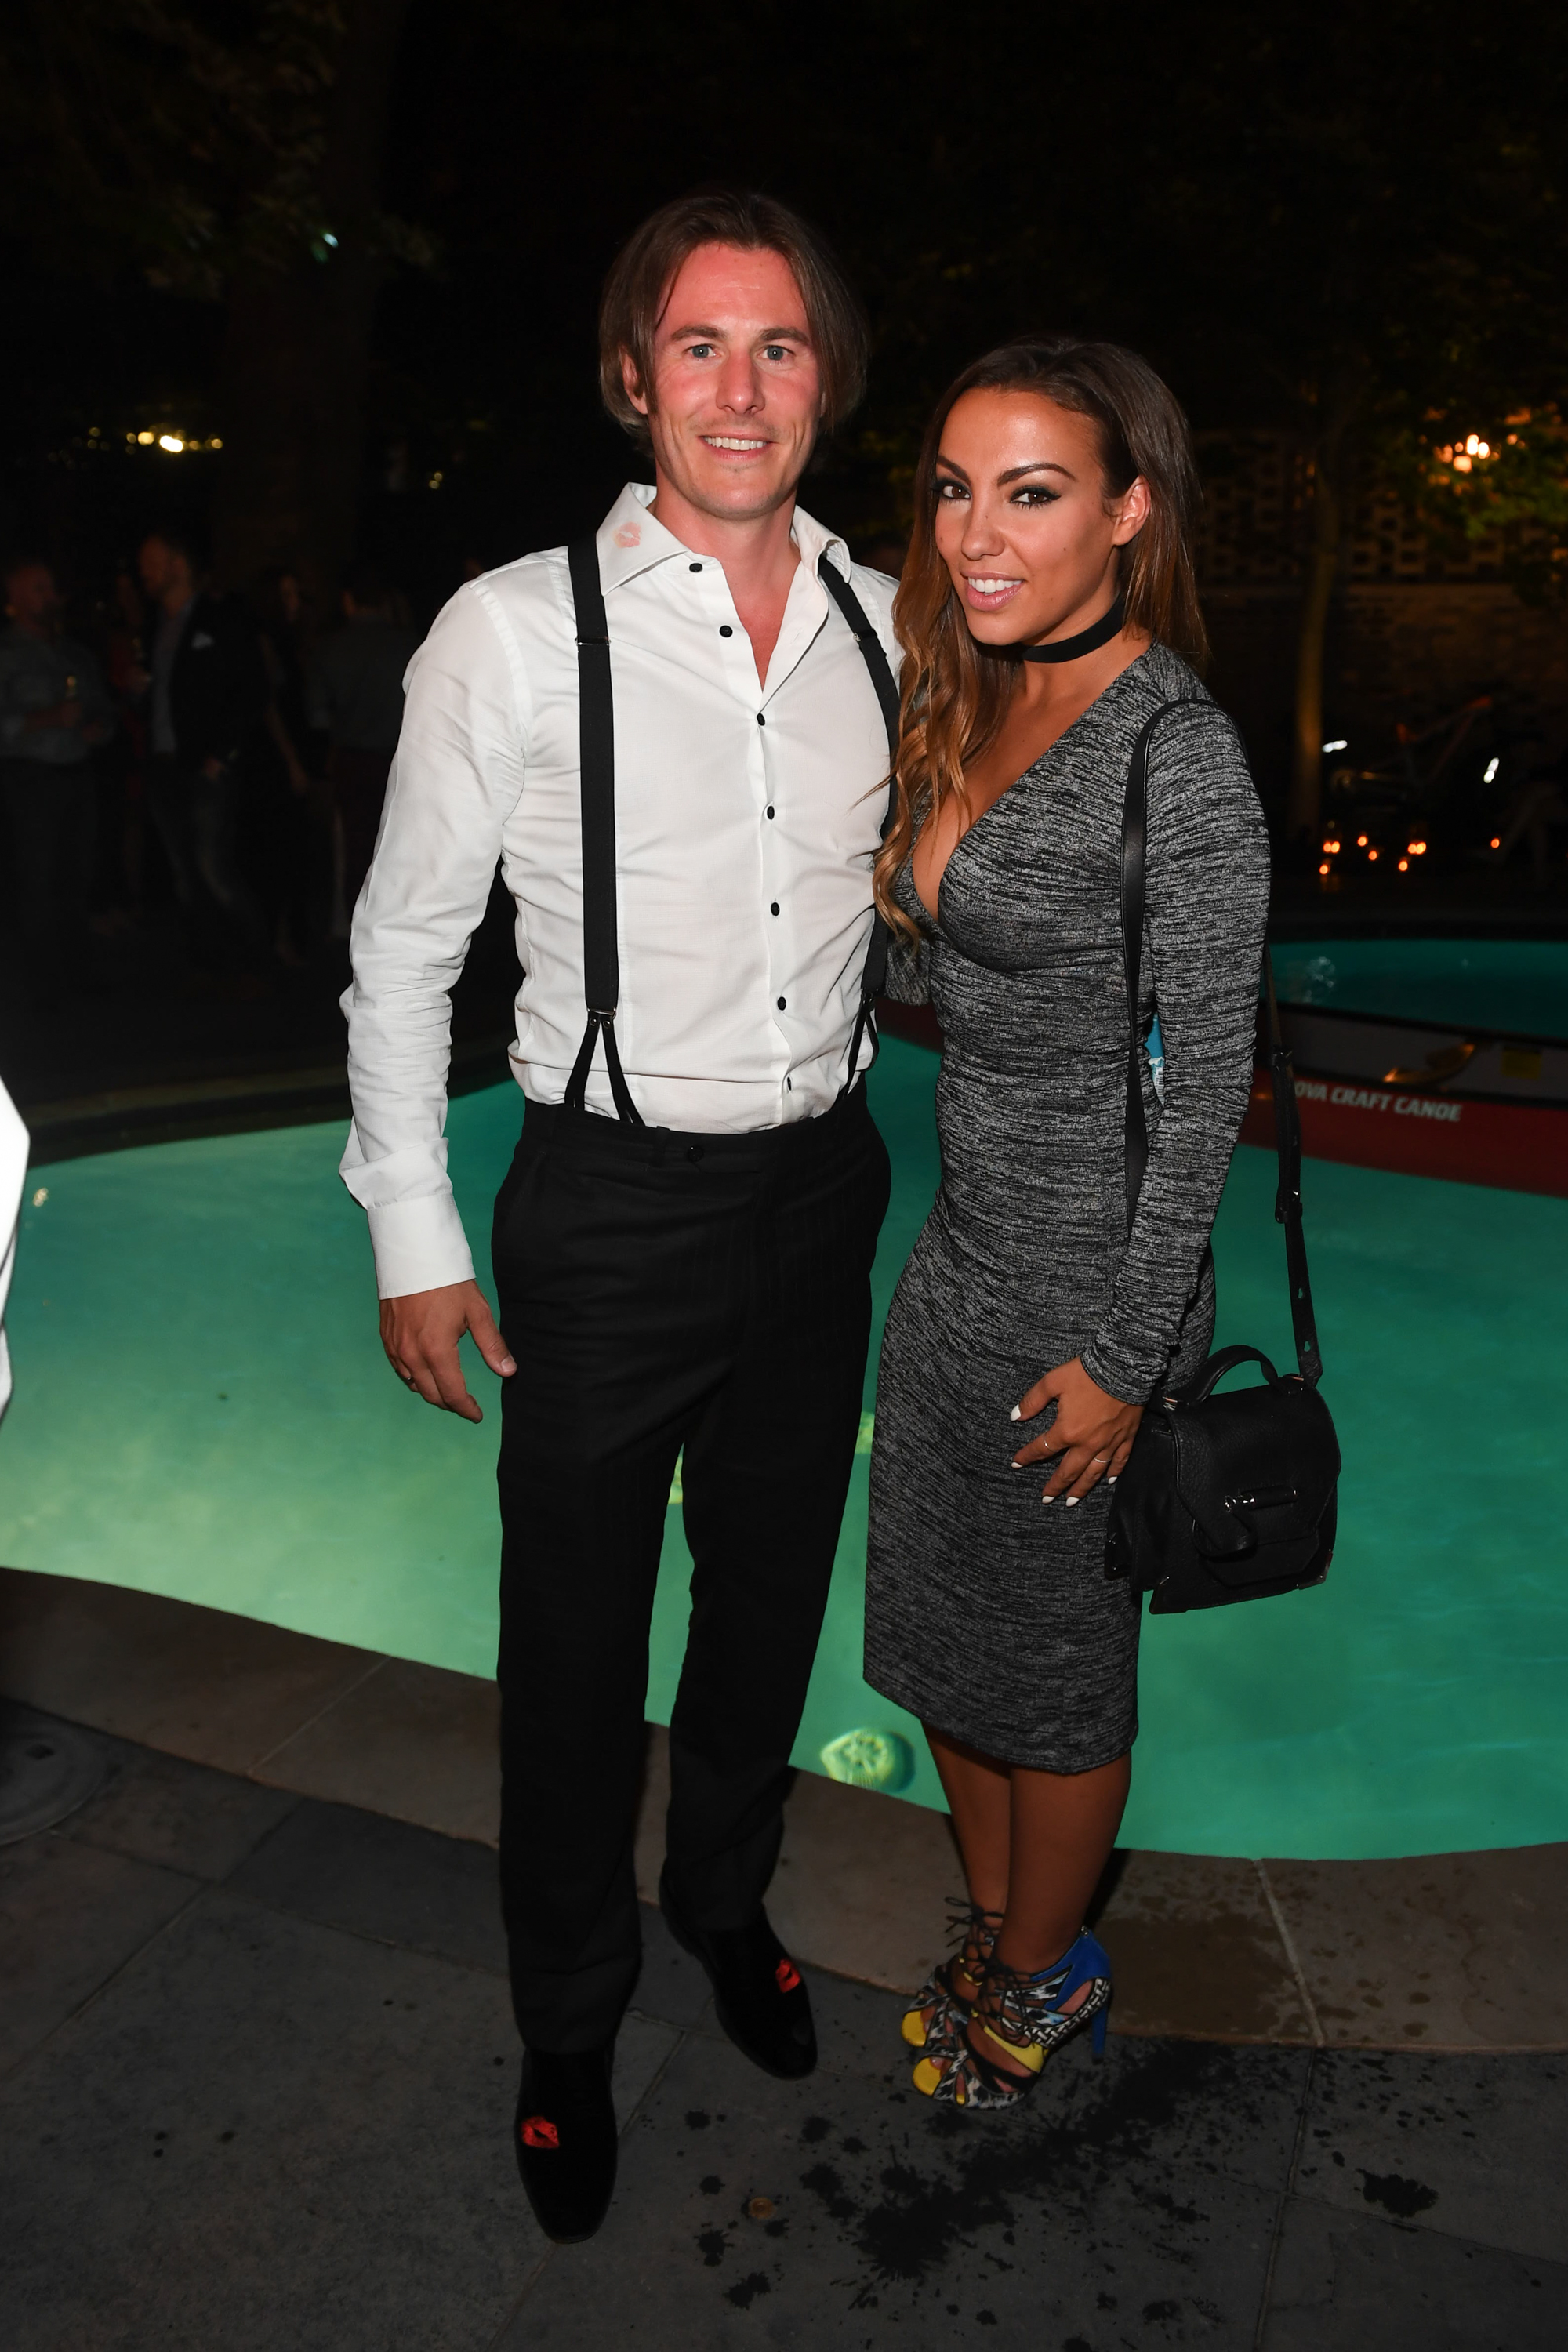 Christopher Bates, designer and Laura Ward, ET Canadaat NKPR Film Festival Countdown Event. PR by NKPR.